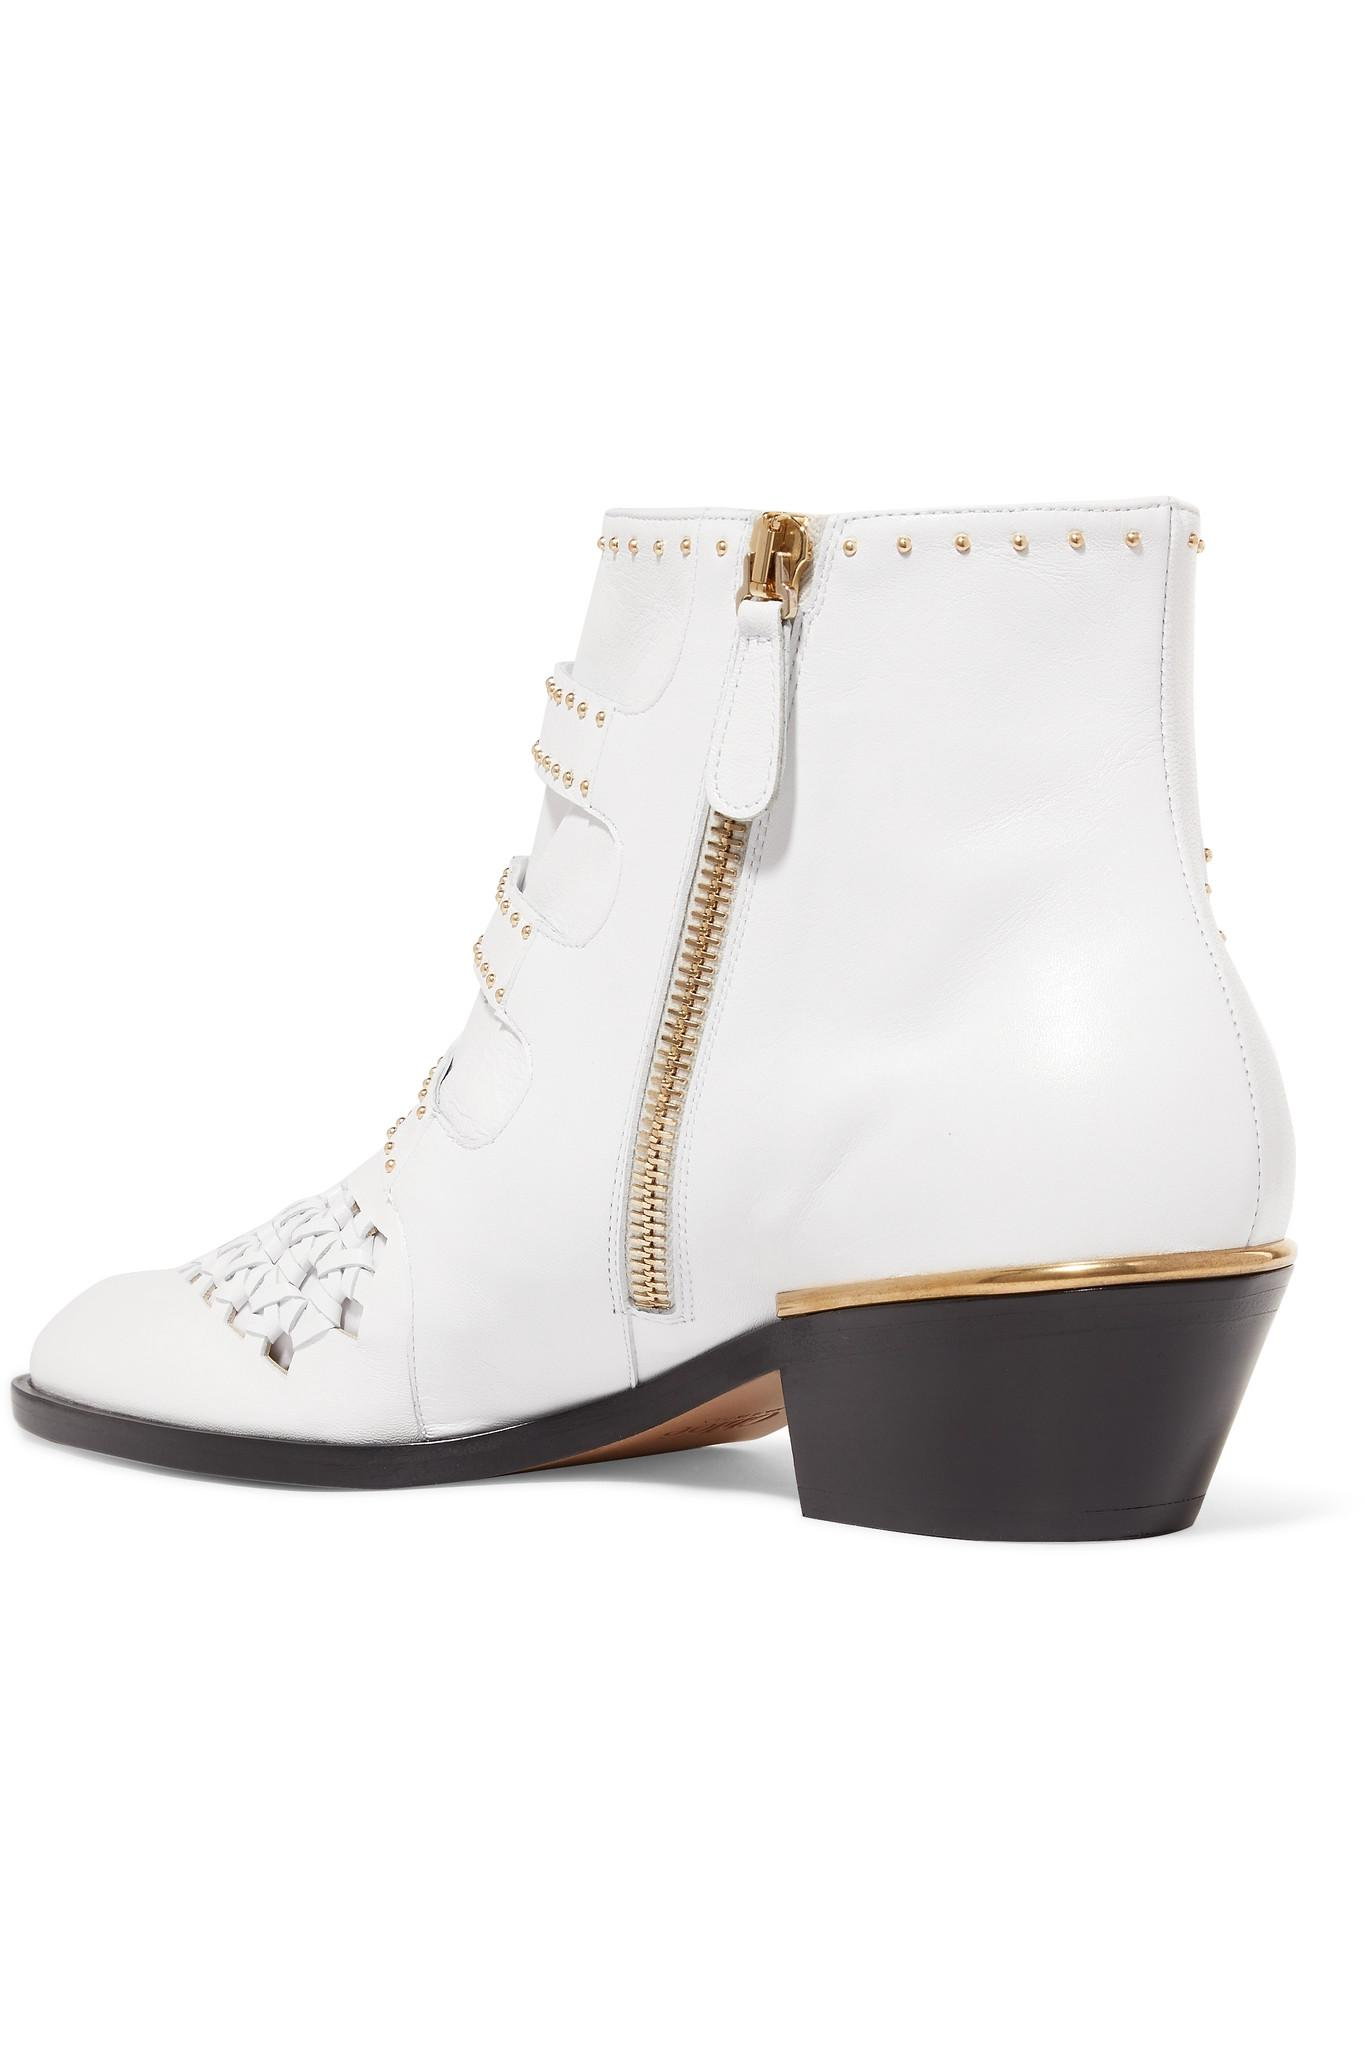 Chloé Susanna Cutout Studded Leather Ankle Boots in White